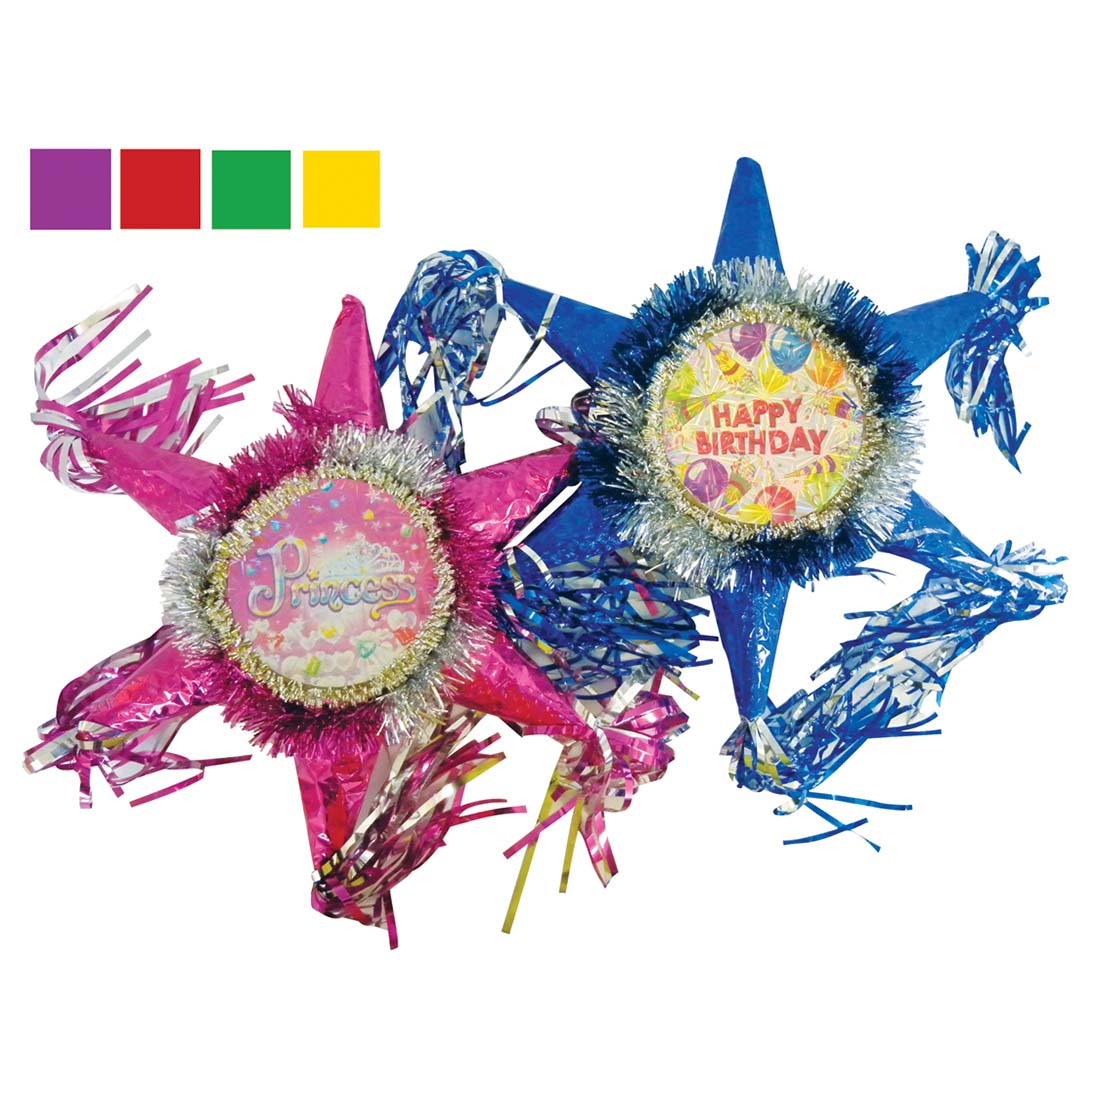 View PARTY PINATA 11 INCH ASSORTED COLORS & DESIGNS